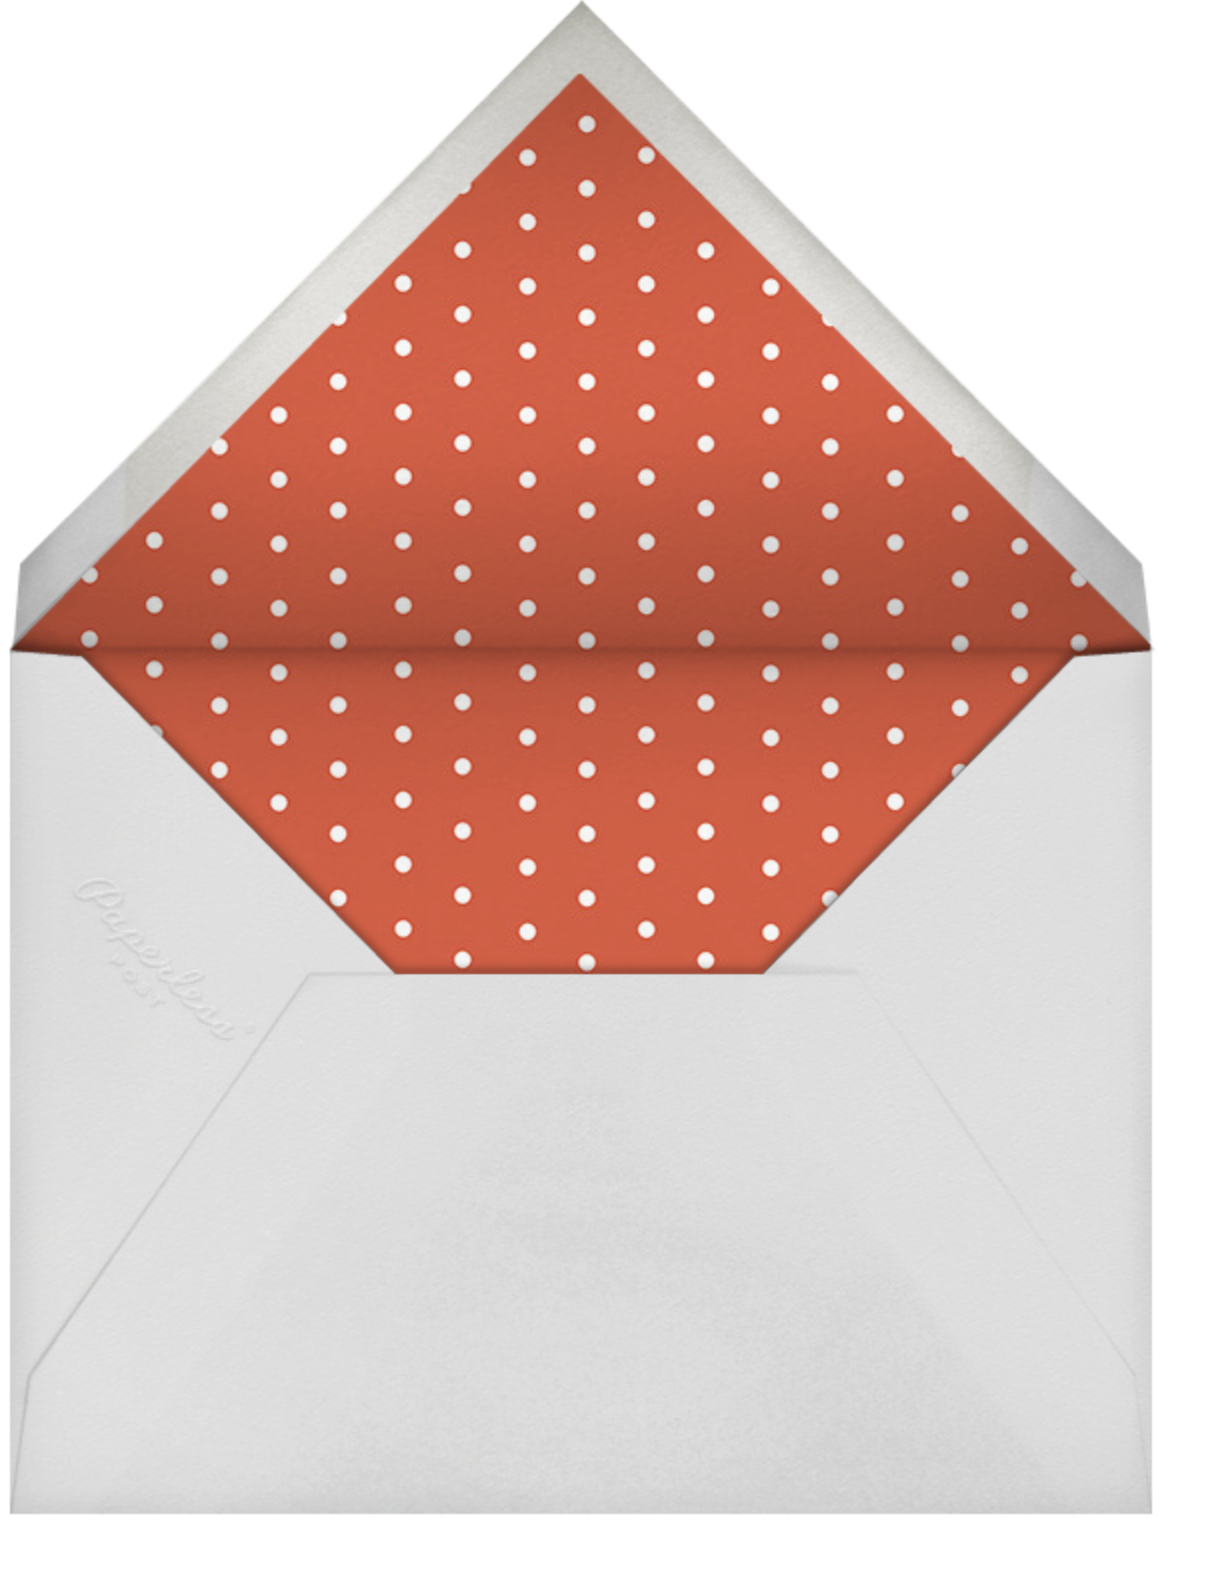 Santa by Moonlight - Fair - Rifle Paper Co. - Christmas - envelope back